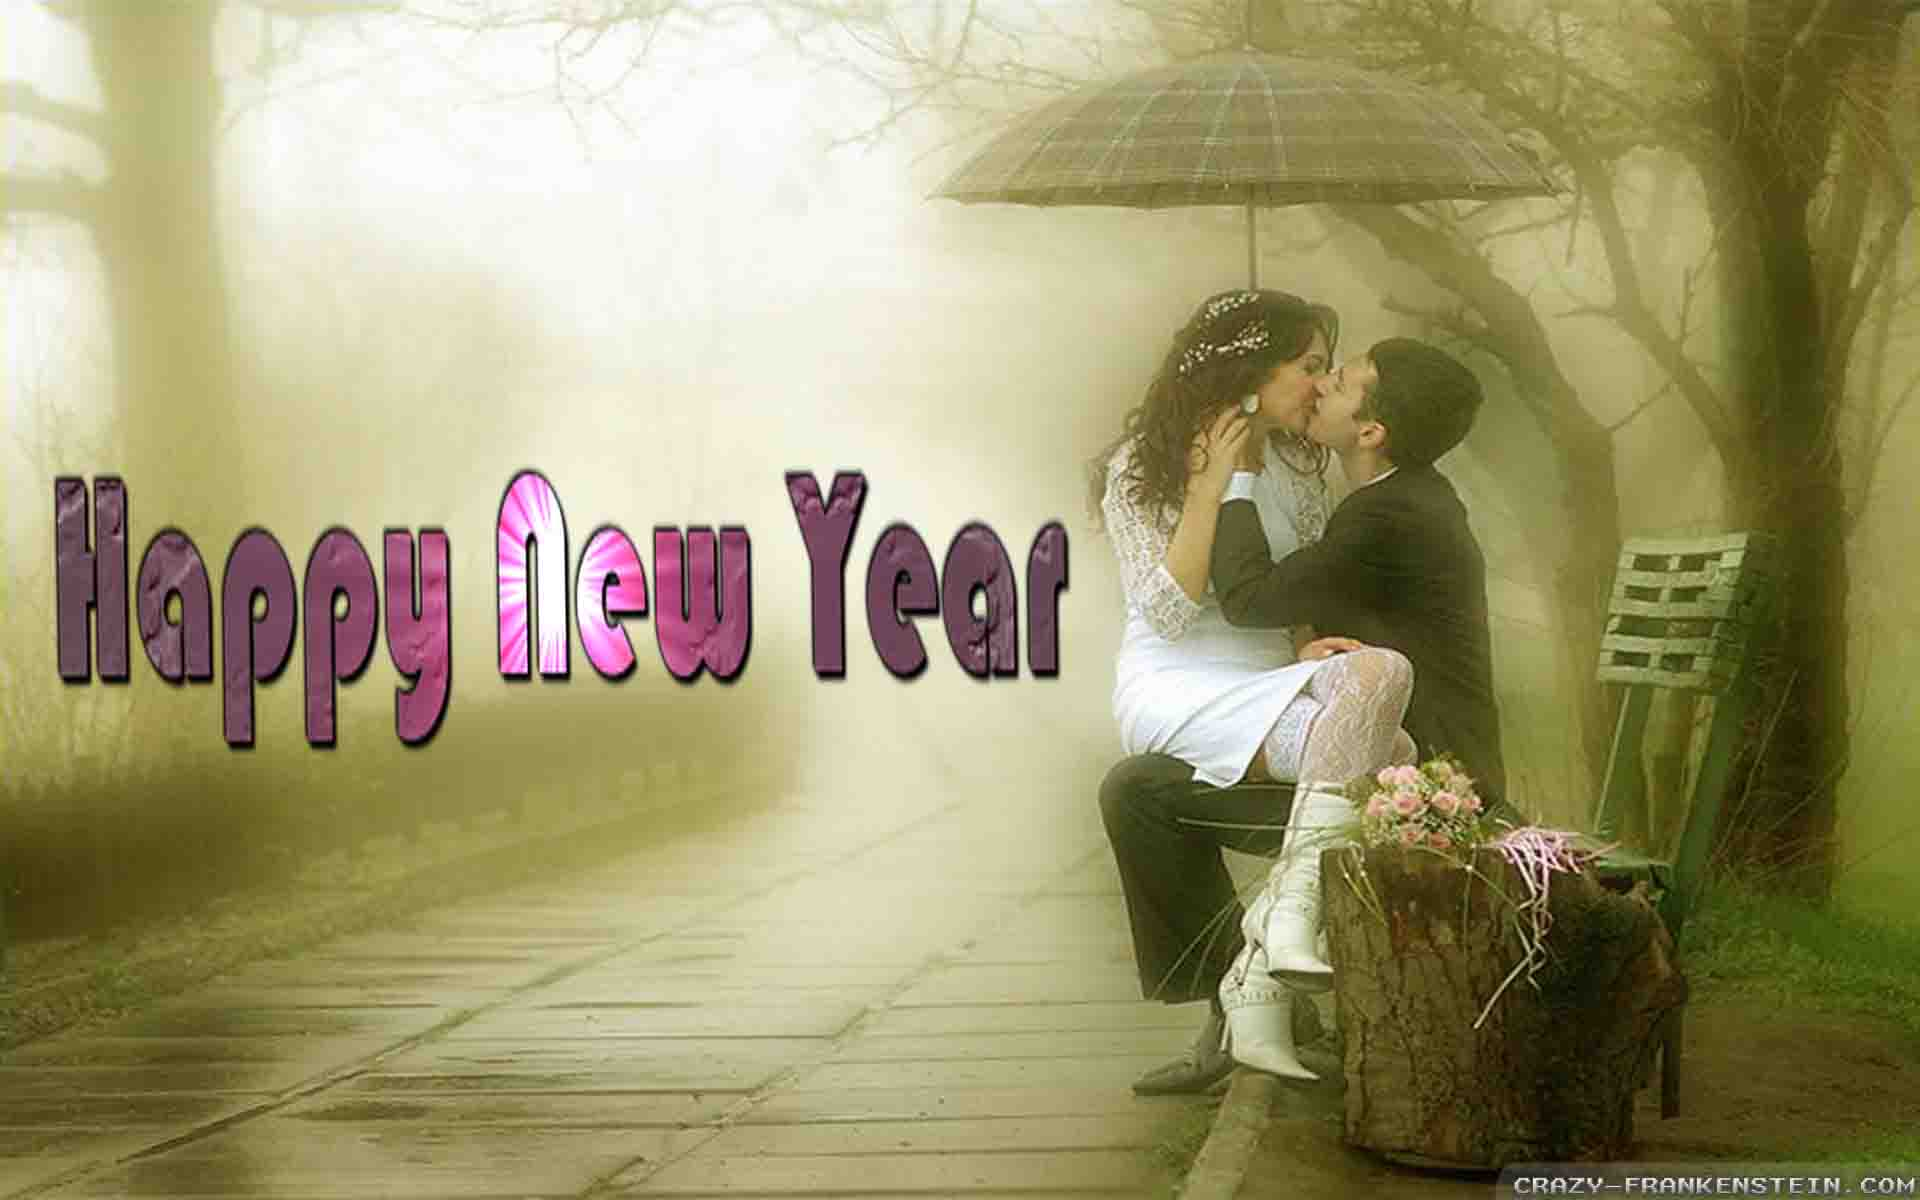 seductive couple sitting in rain new year images wallpaper free download